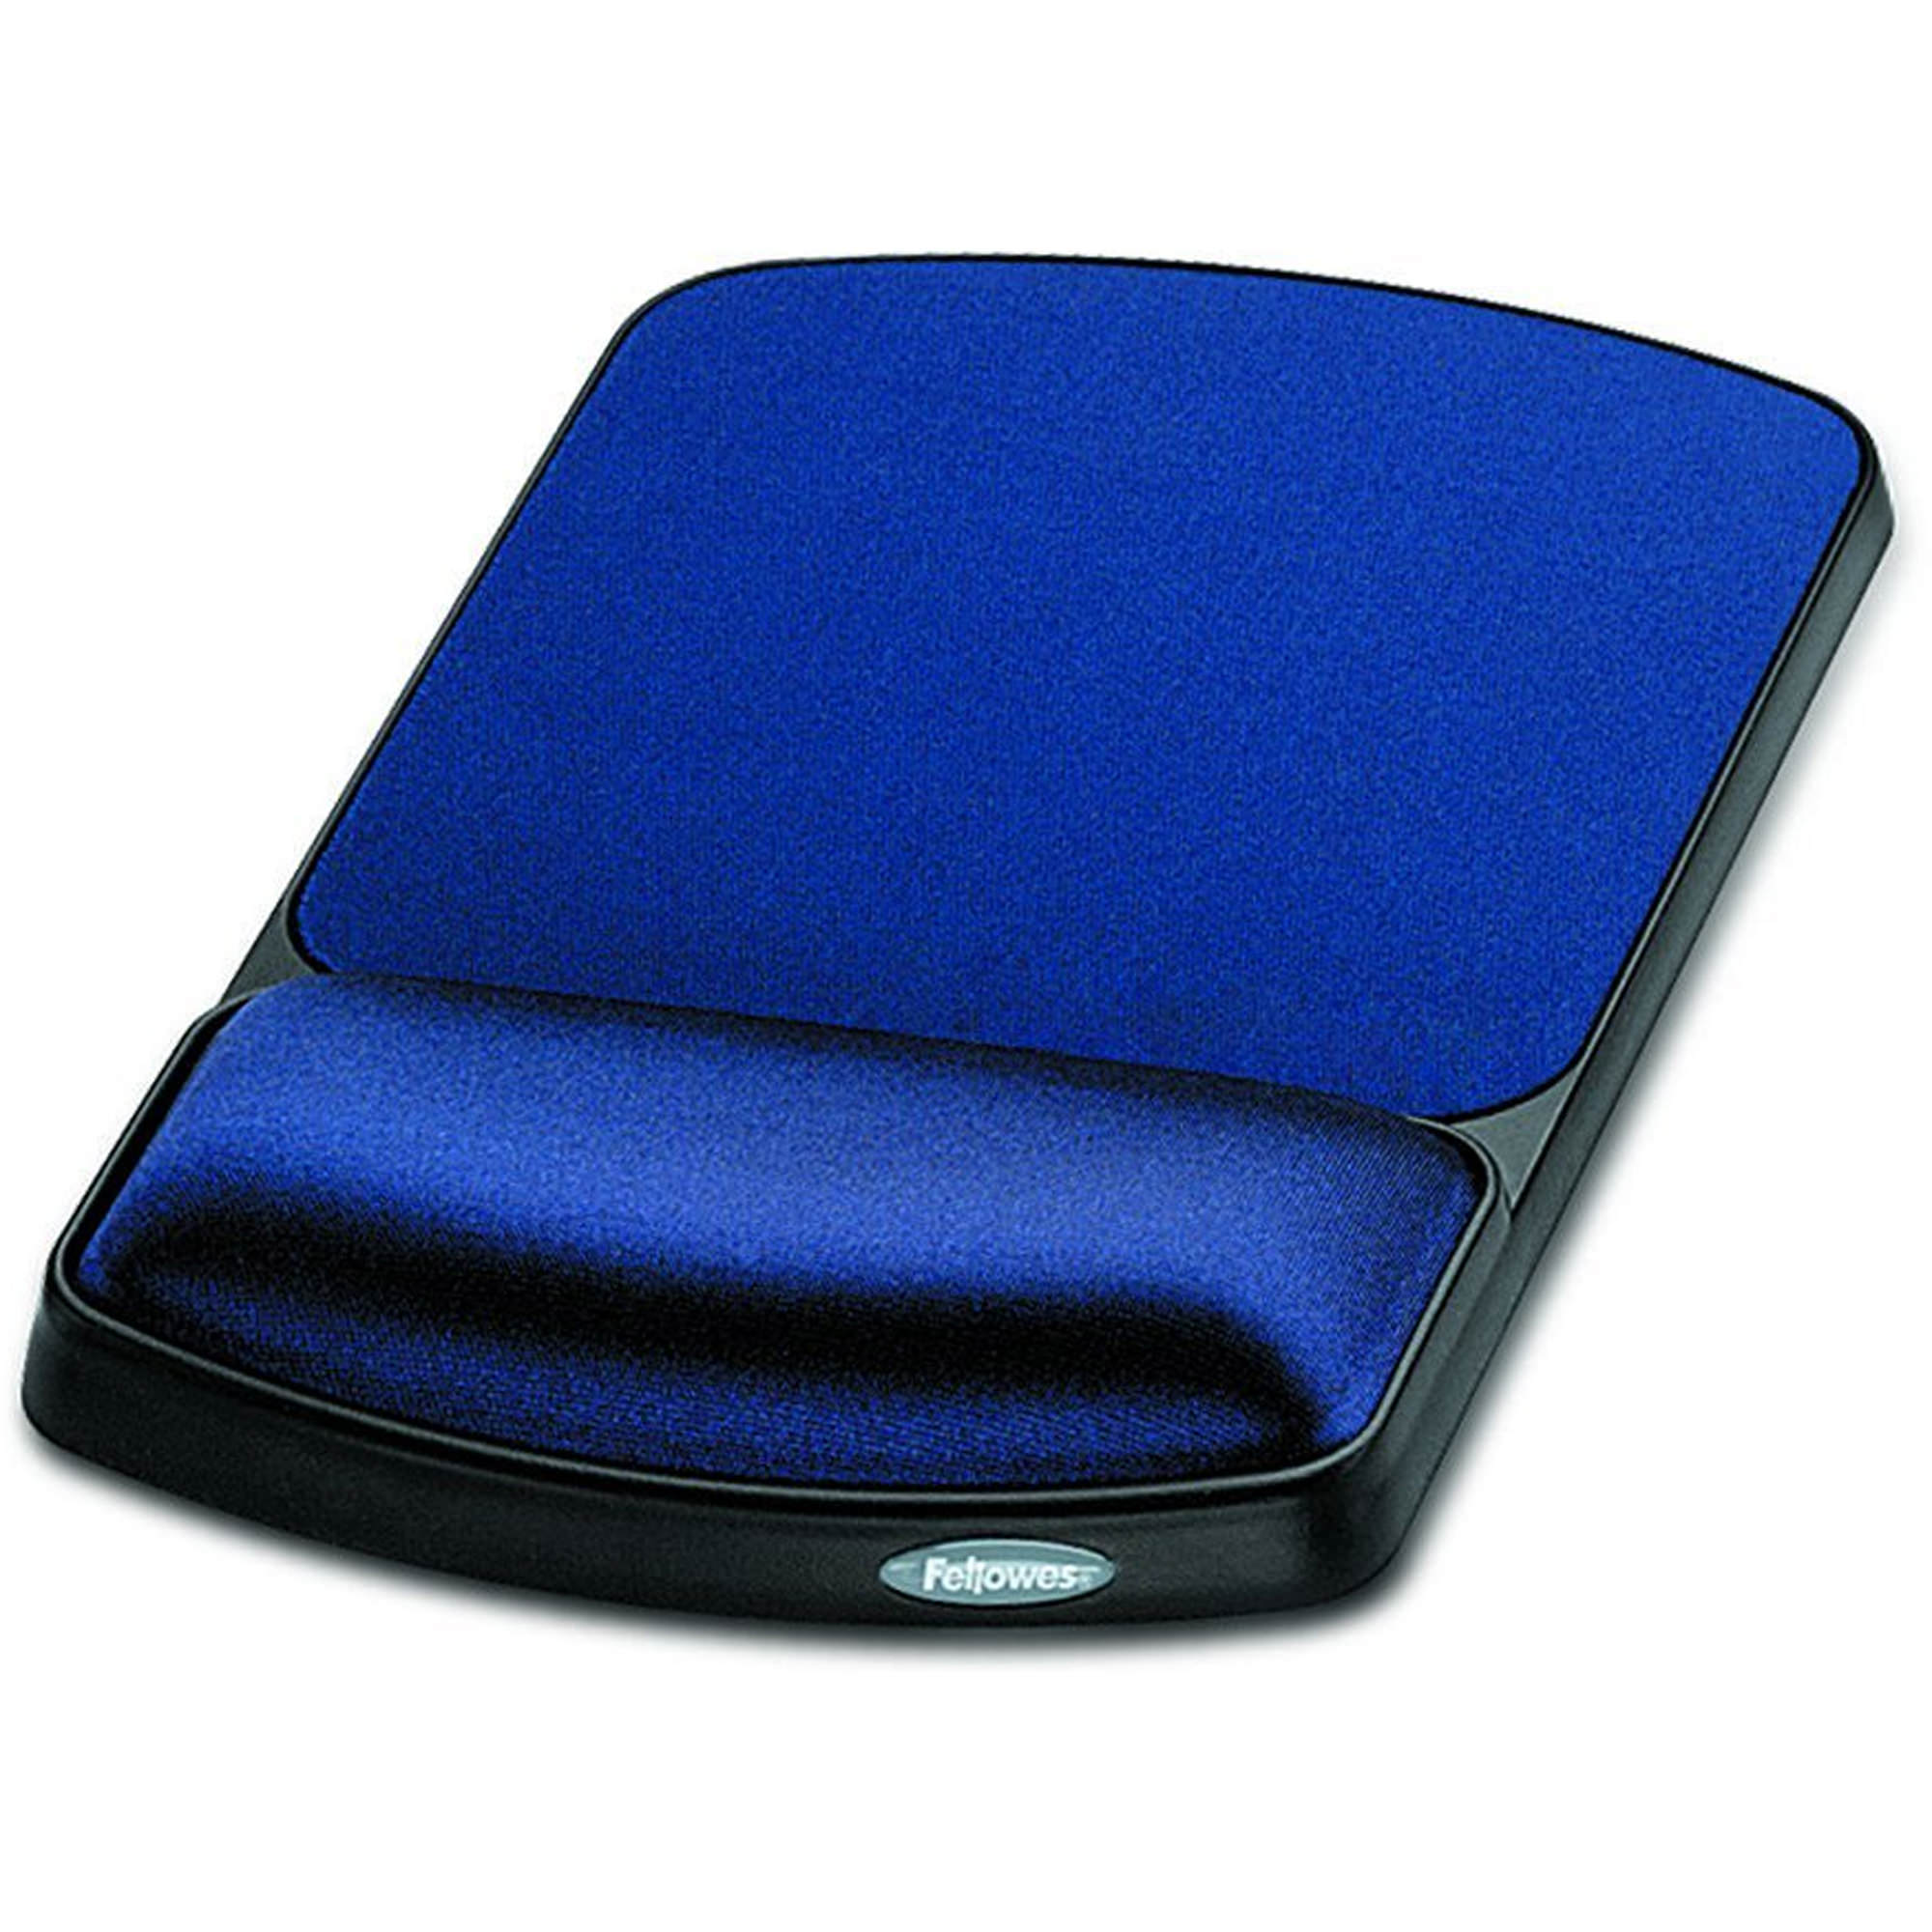 Fellowes Gel Wrist Rest and Mouse Rest - Sapphire